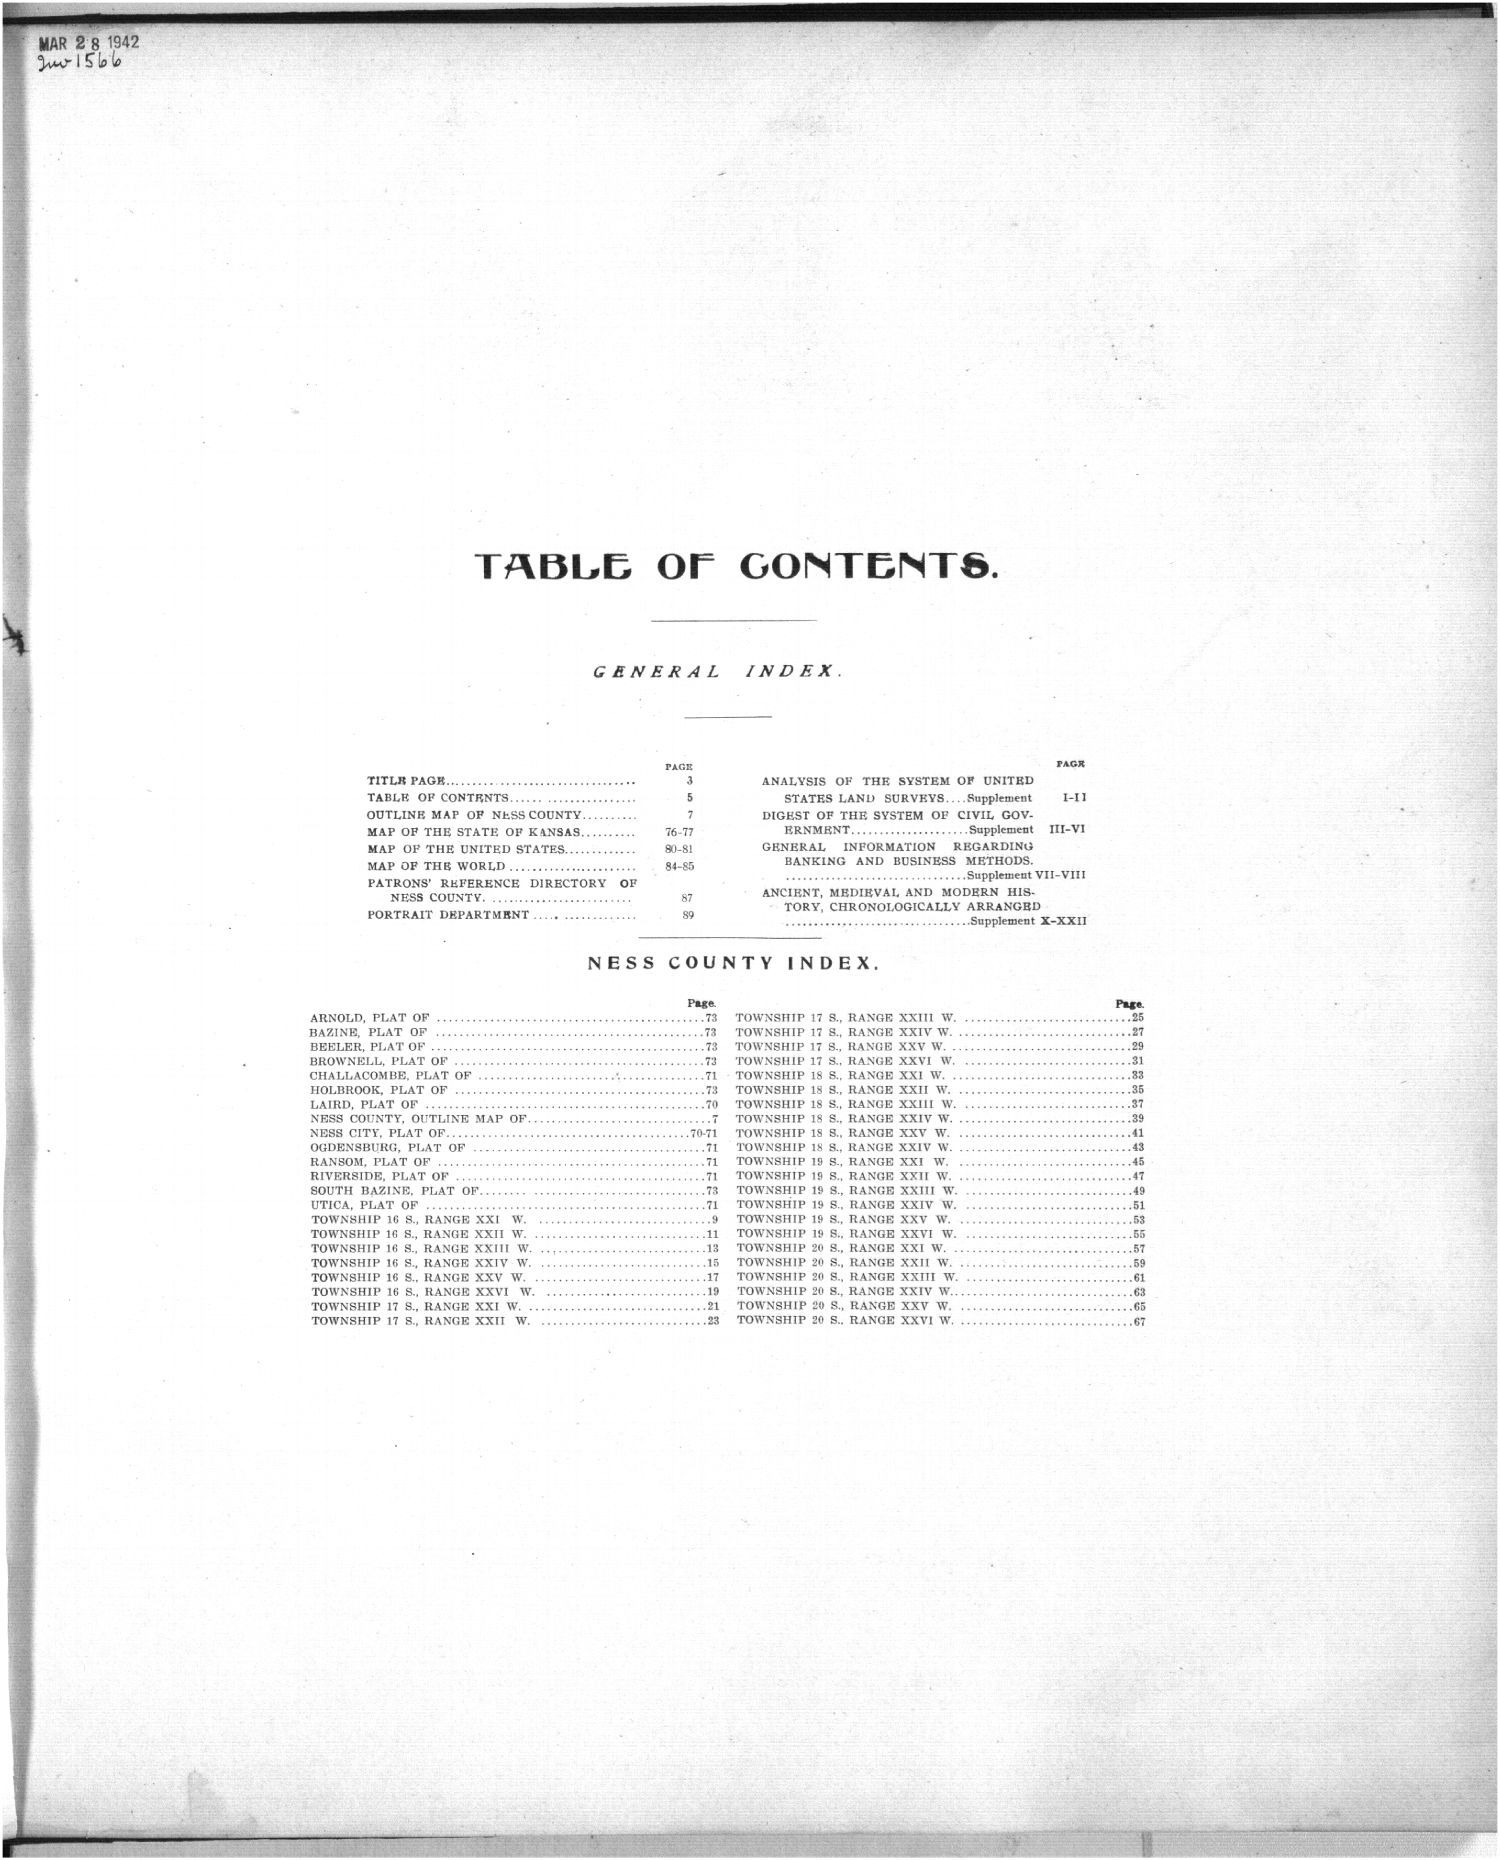 Standard atlas of Ness County, Kansas - Table of Contents